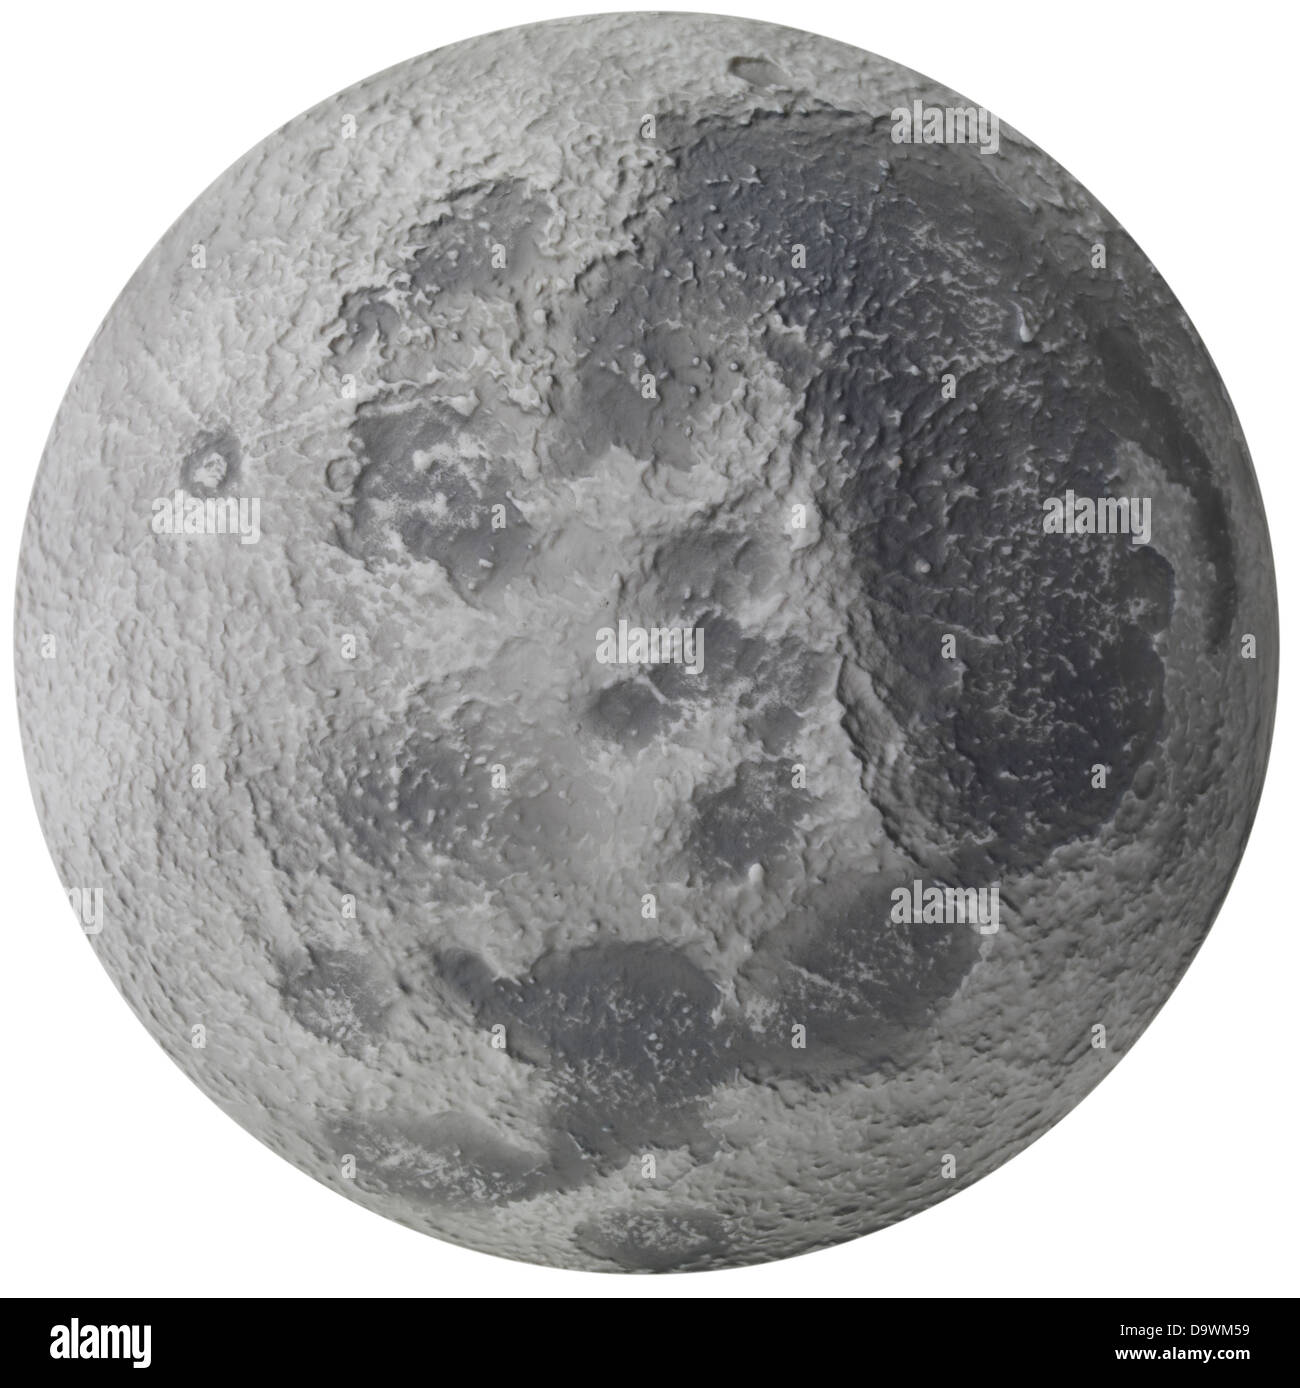 surface of the moon - Stock Image